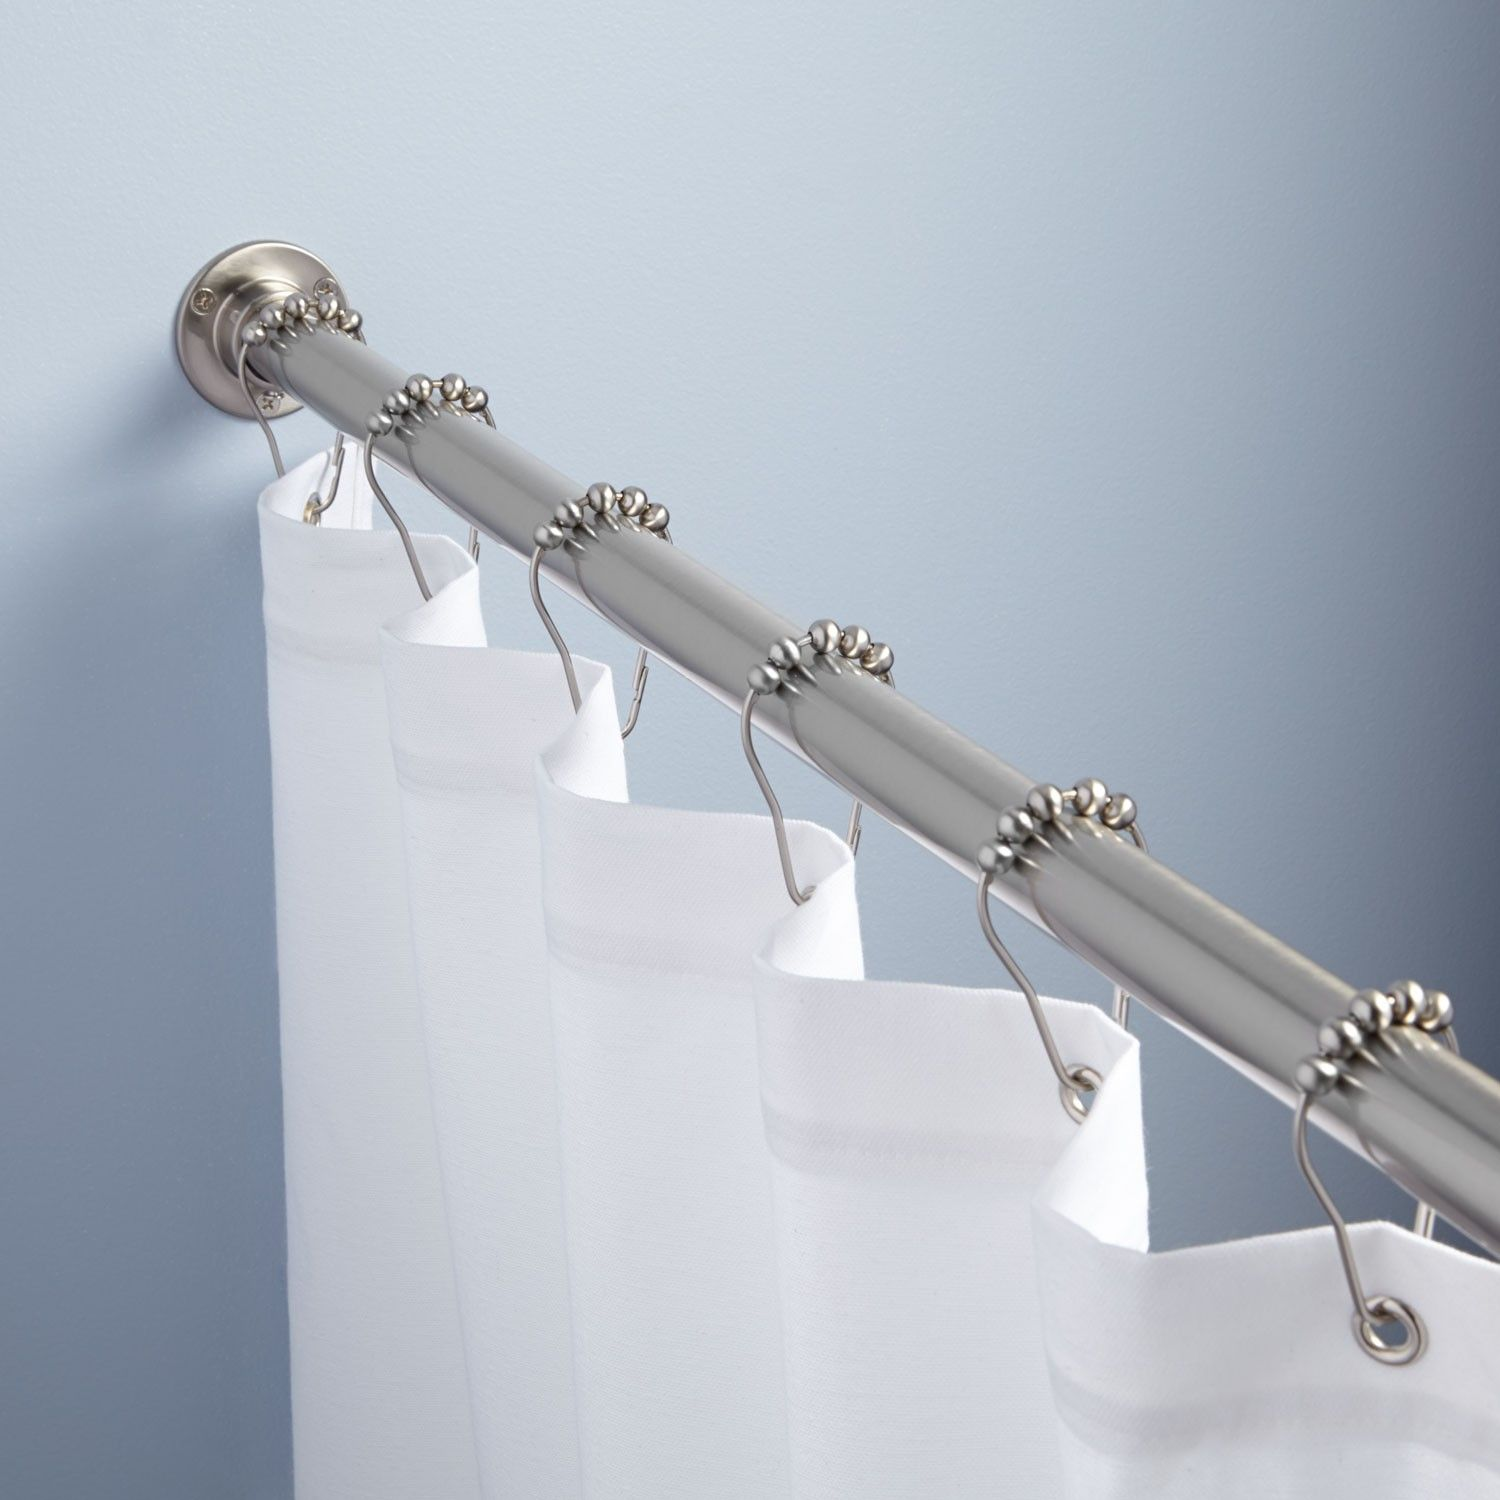 Straight Solid Brass Shower Curtain Rod | Shower curtain rods, Solid ...